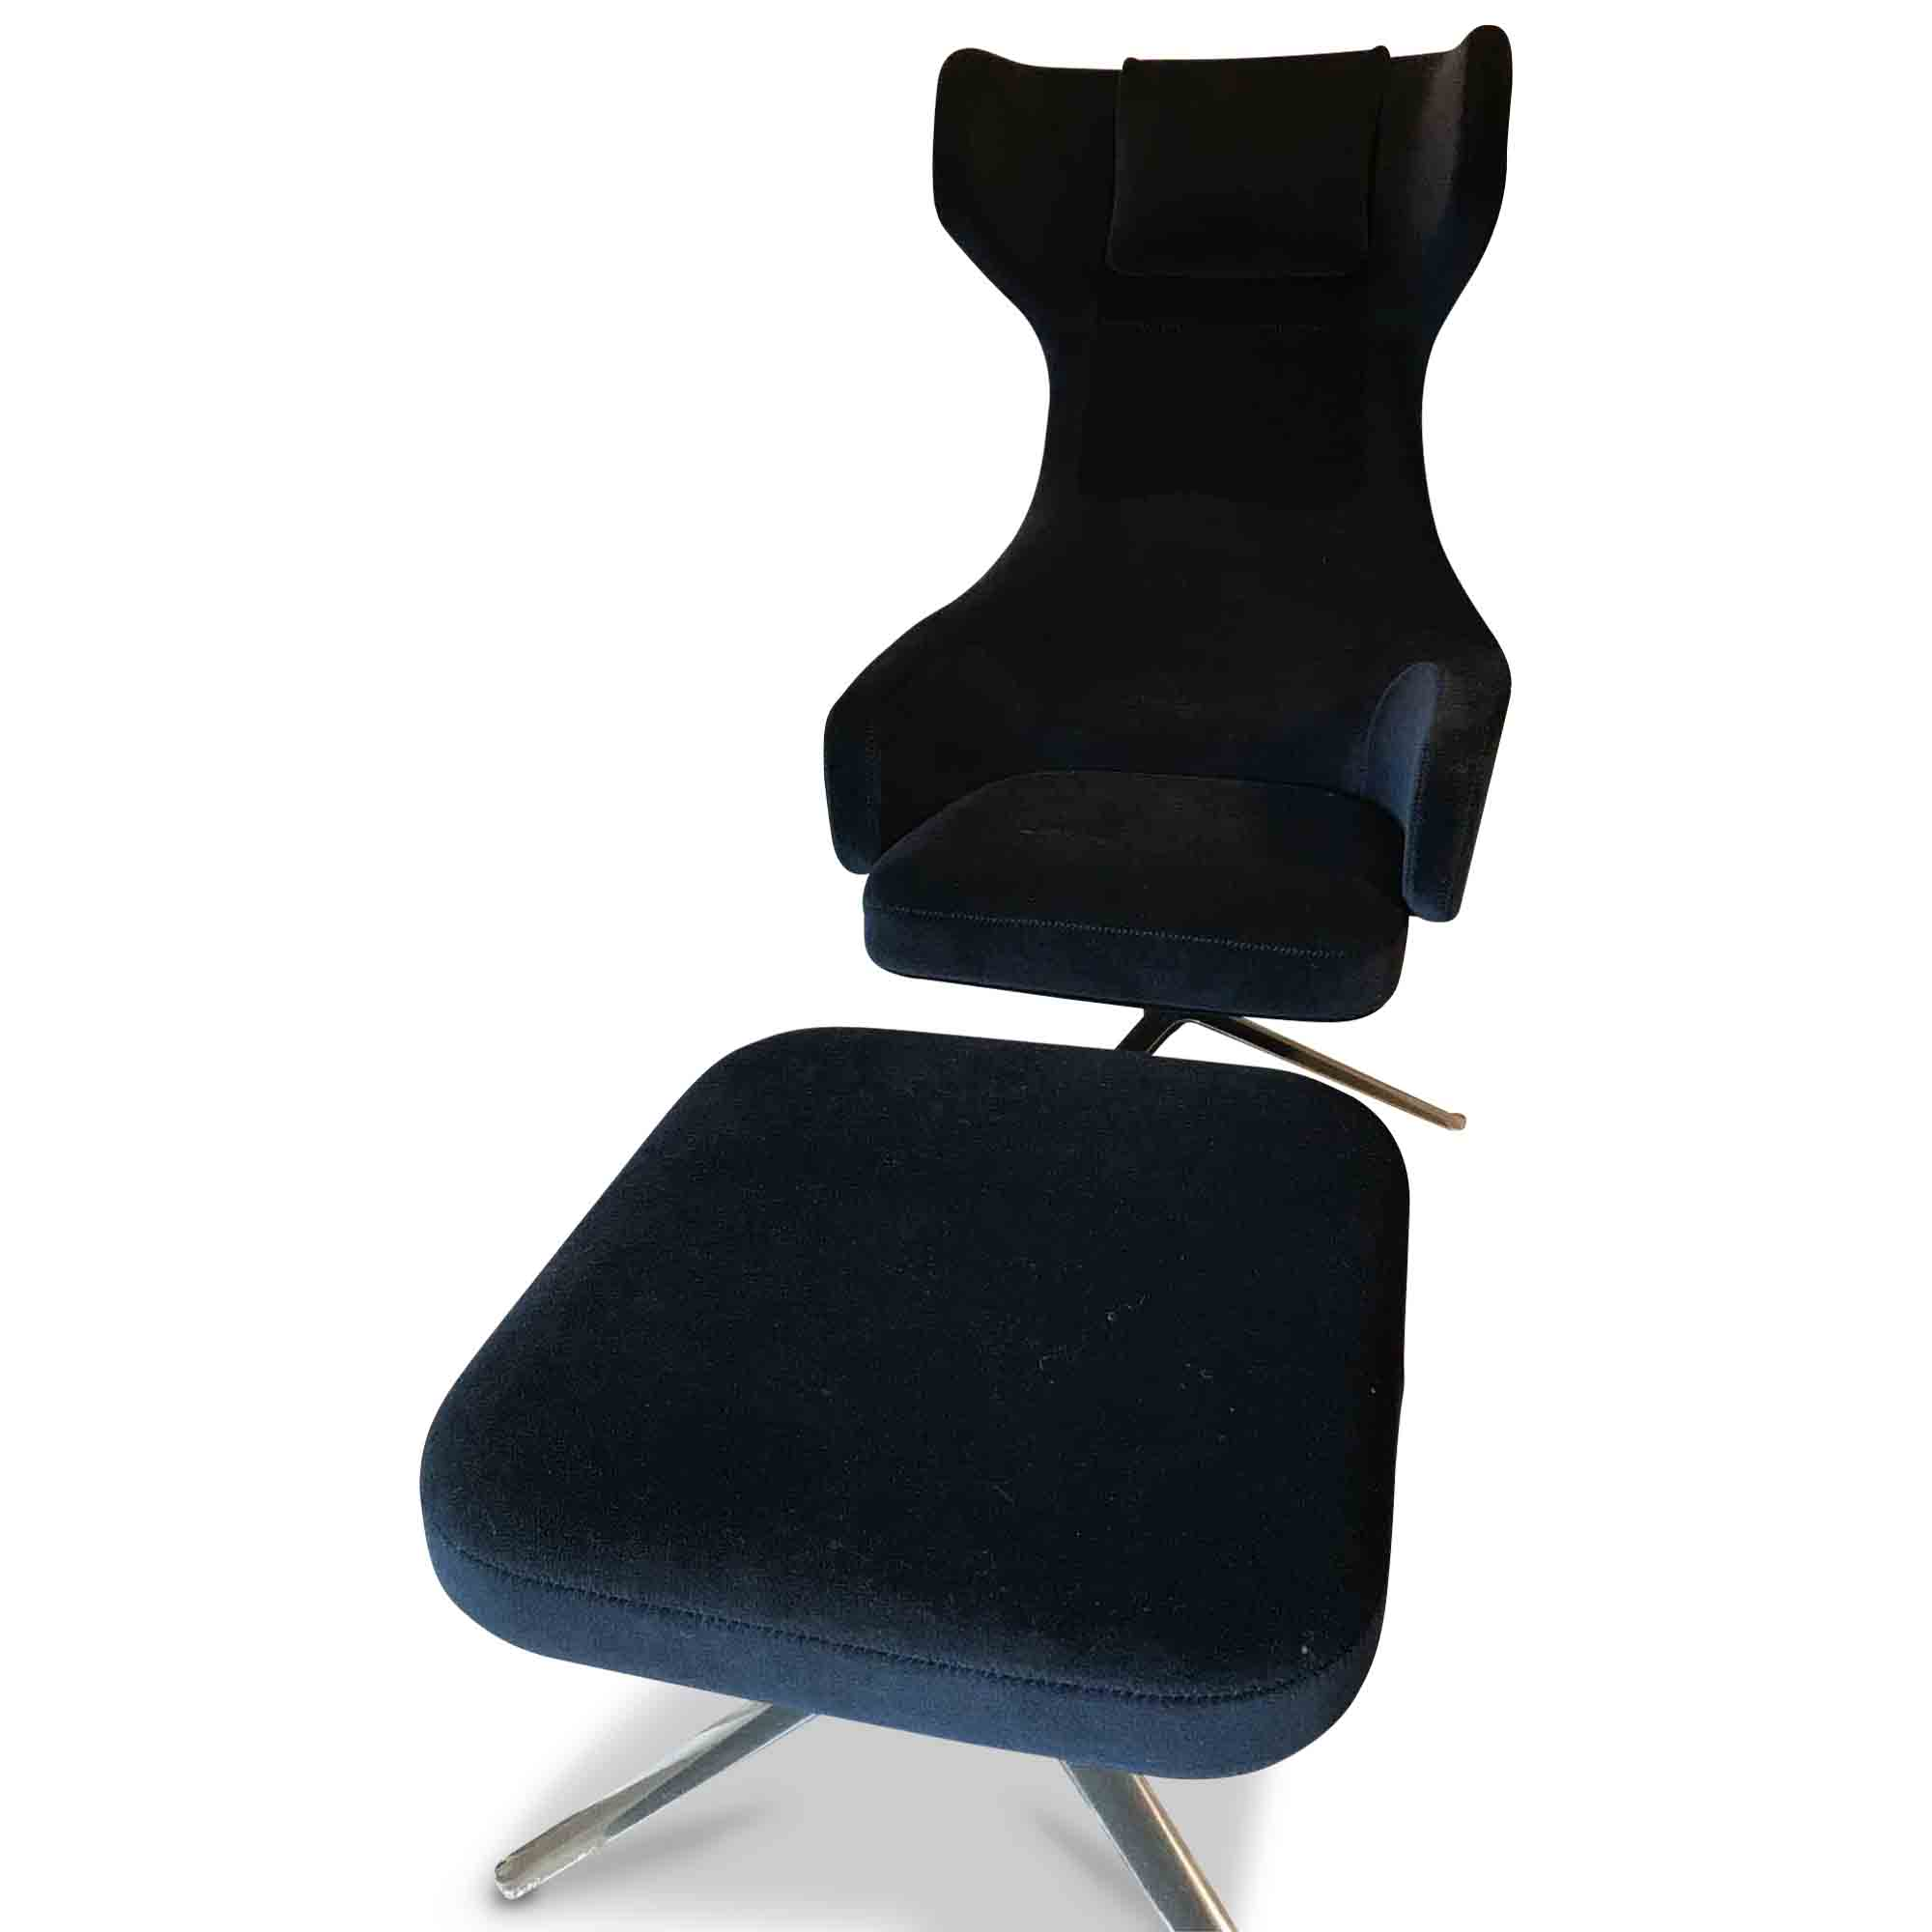 Vitra designer sessel grand repos mit hocker dunkelblau for Sessel dunkelblau